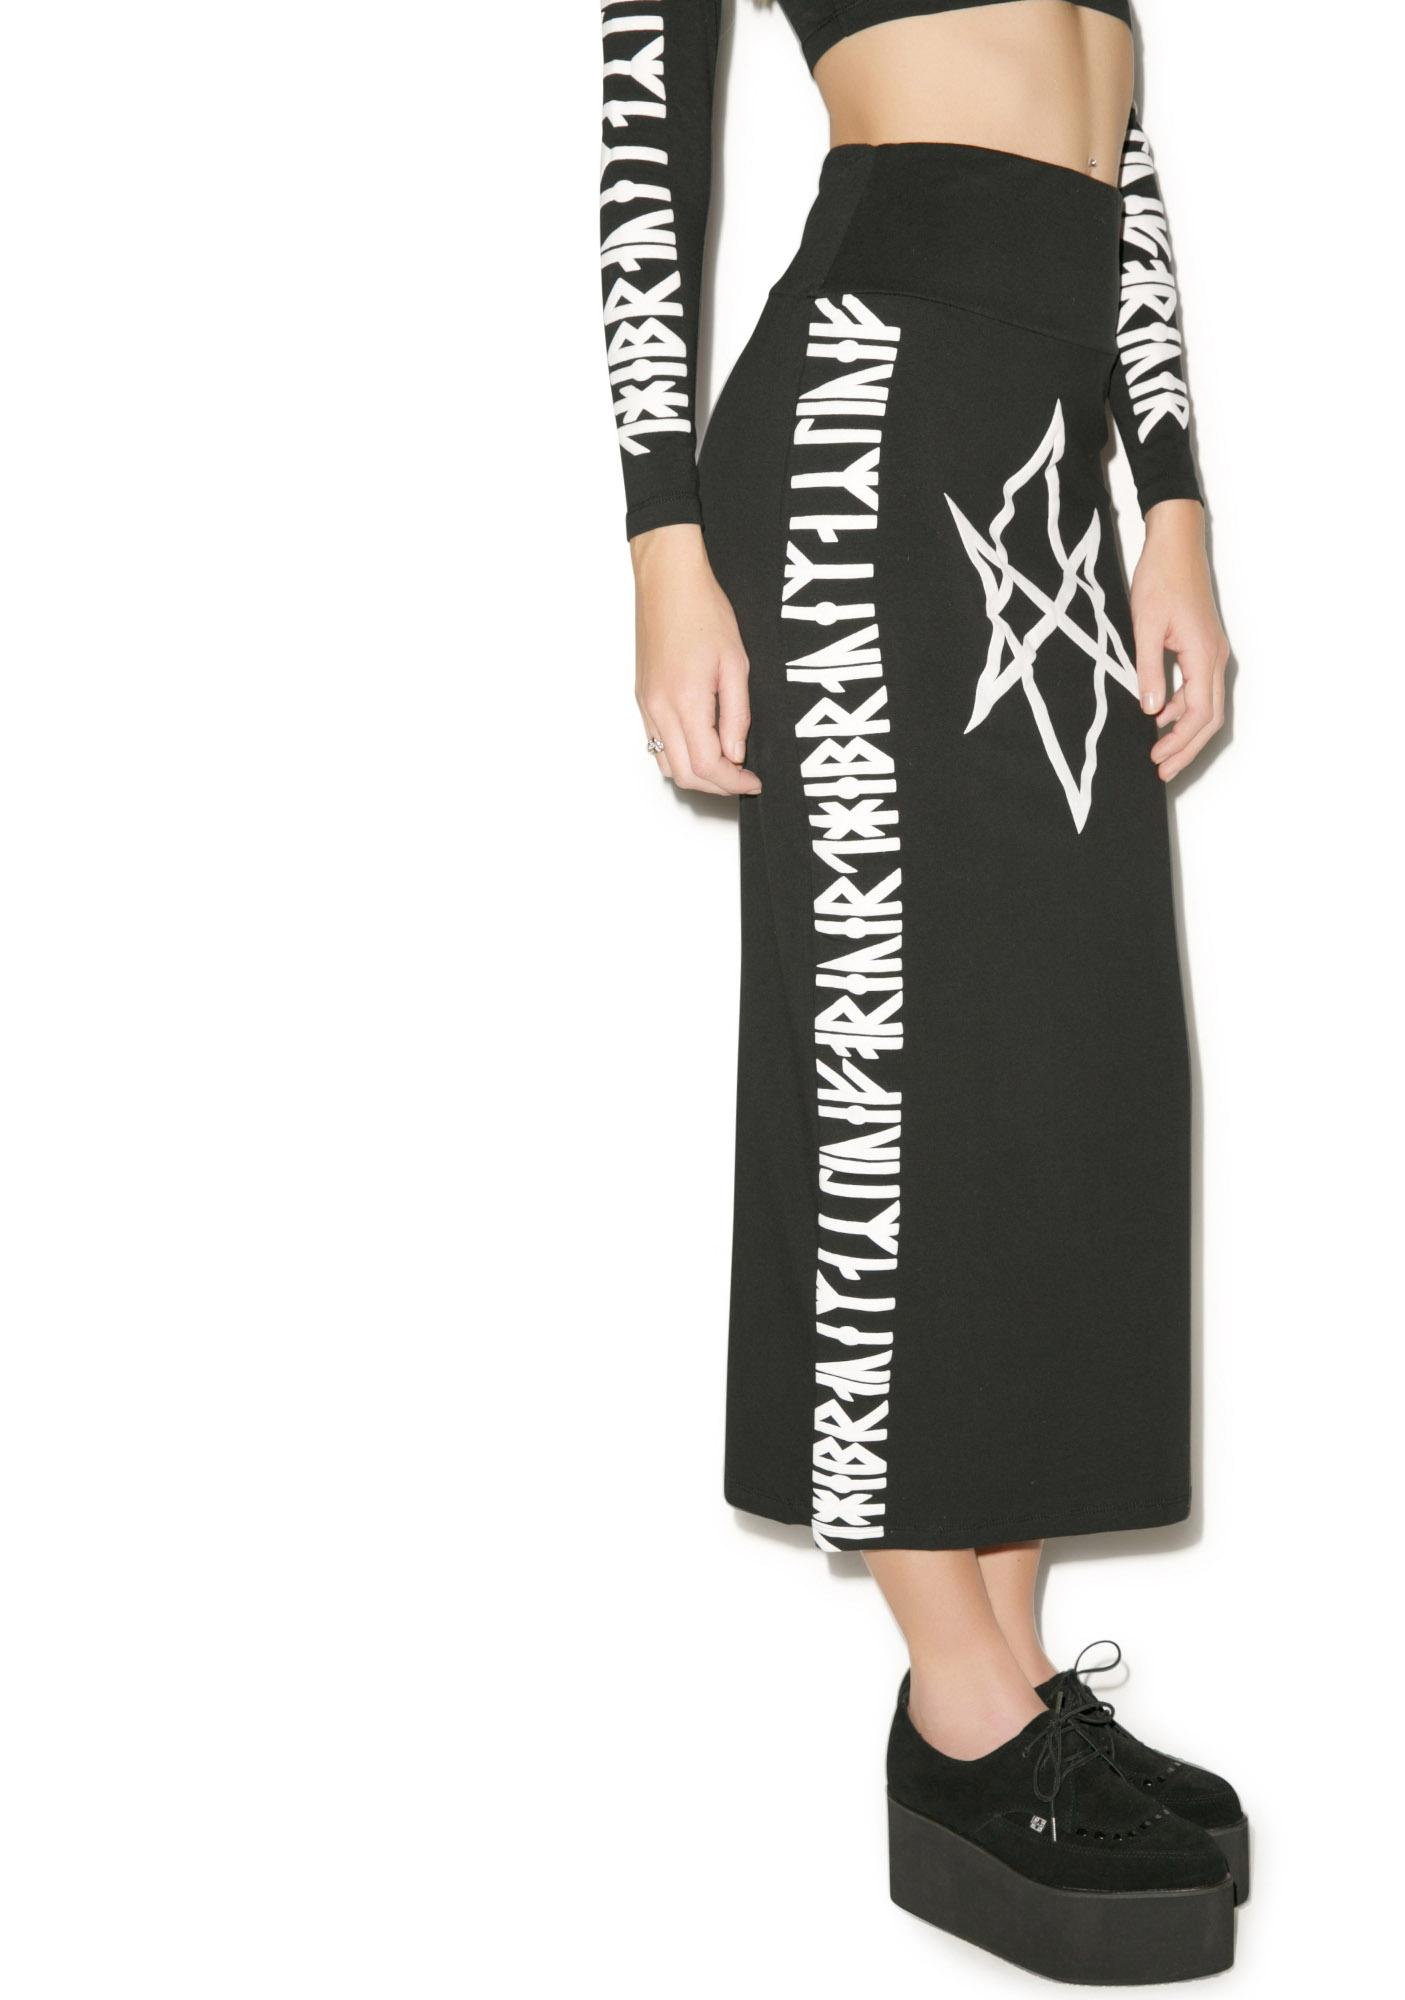 Long Clothing Hexagram Skirt